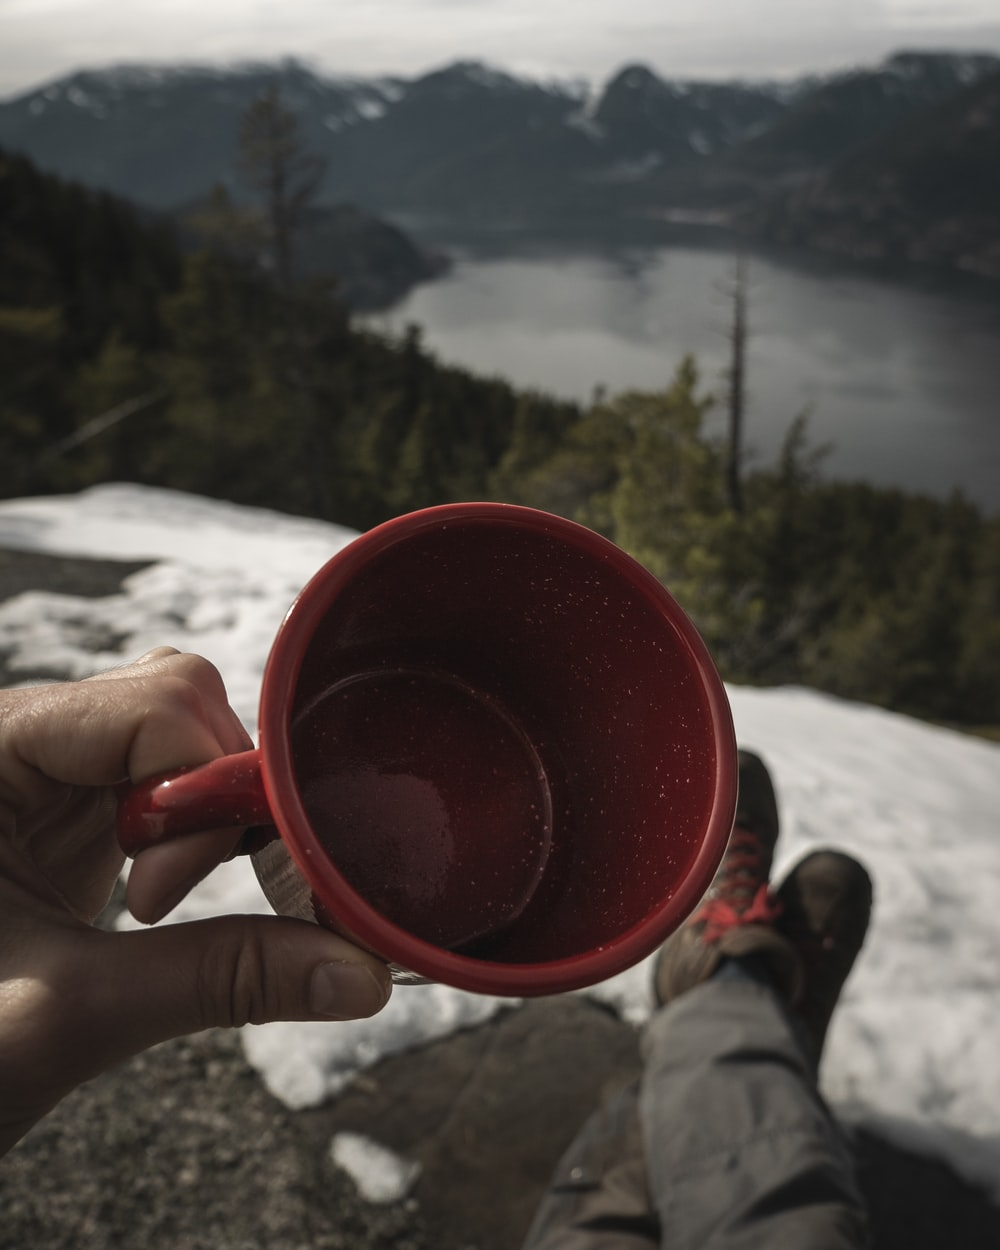 person holding red ceramic mug